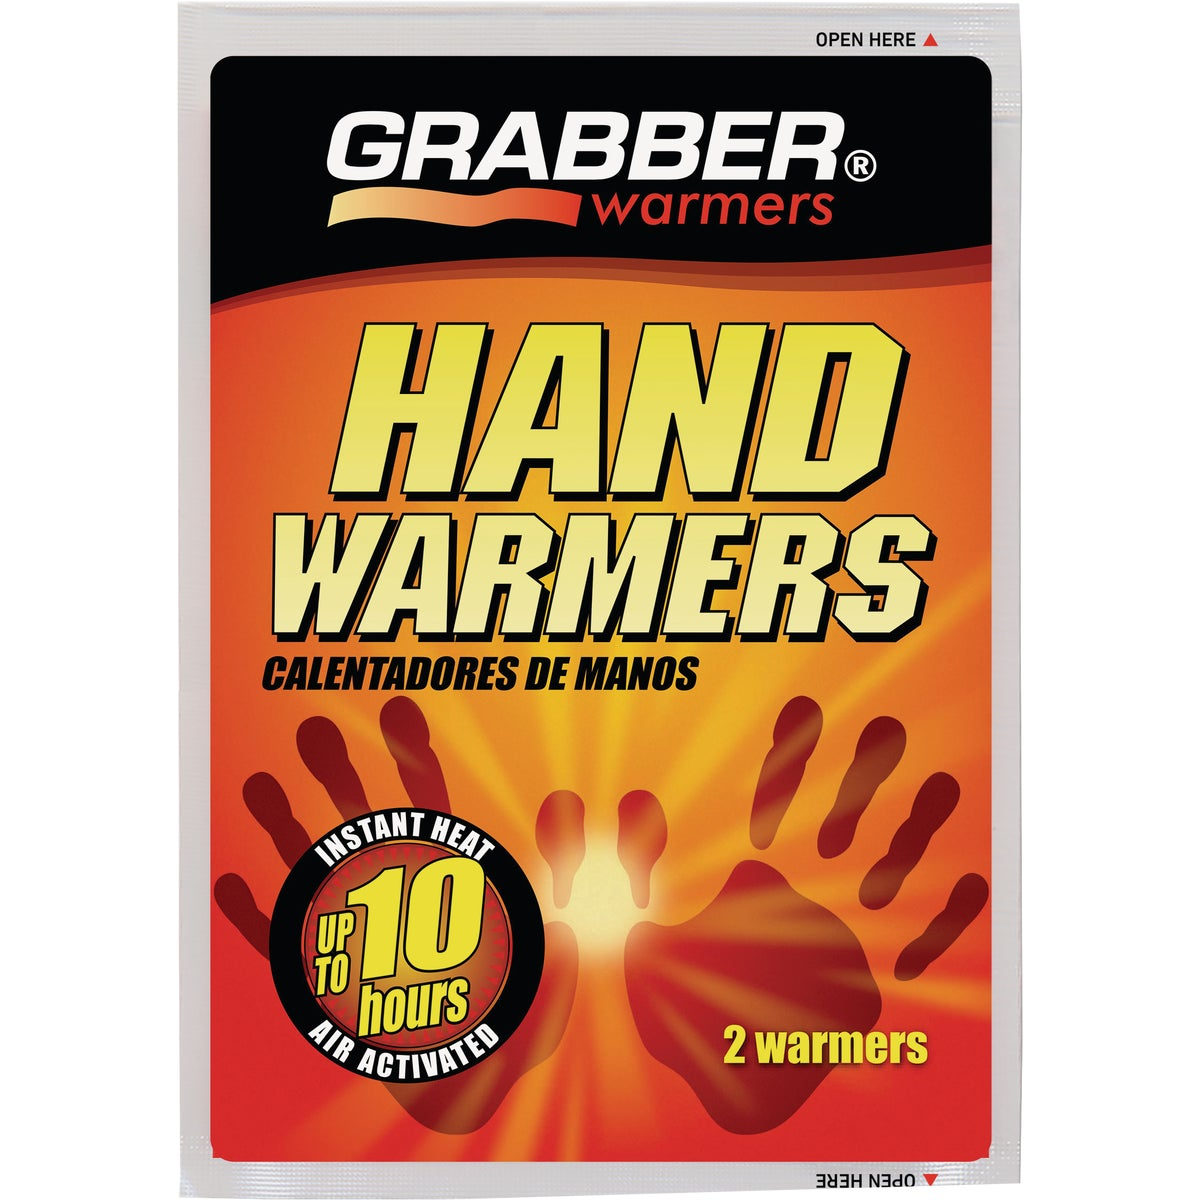 7+ HOUR HAND WARMER - HWES by Grabber Performance